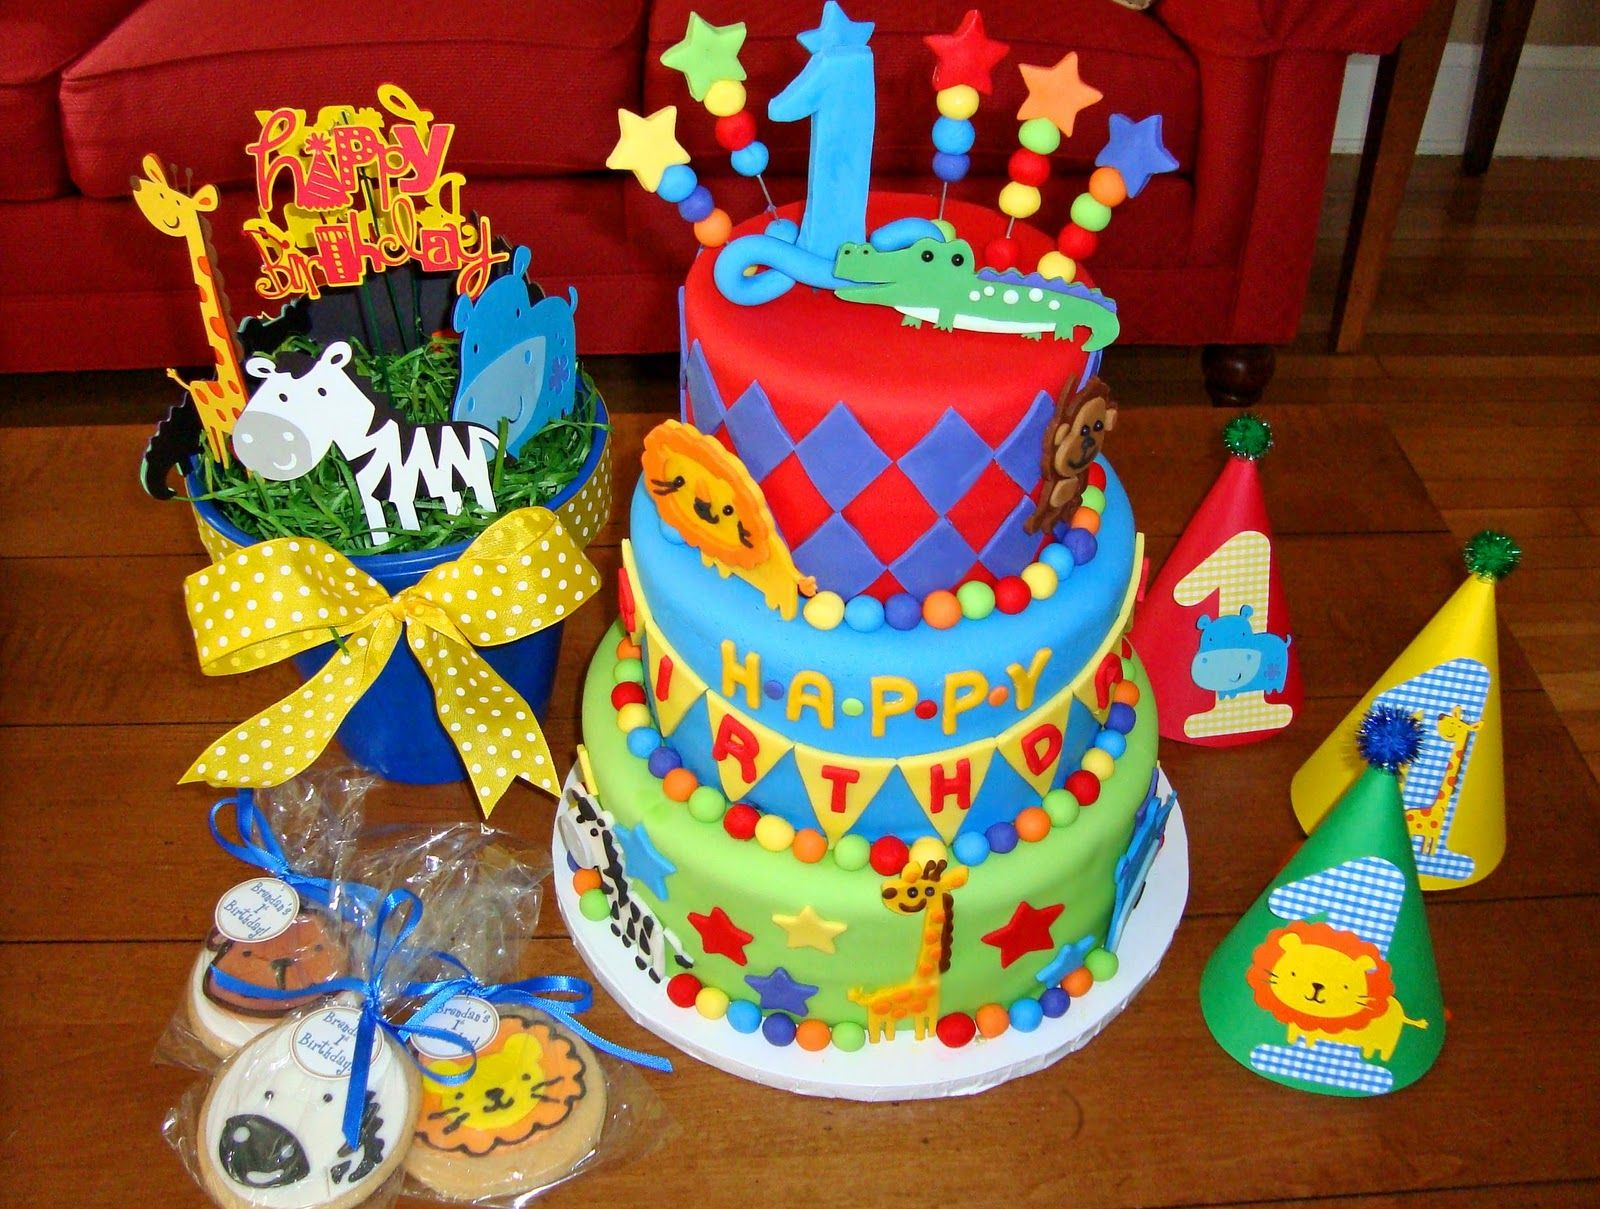 Cake Ideas For Baby Boy 1st Birthday : baby boys first birthday cakes Sugar Butter Baby: Baby s ...